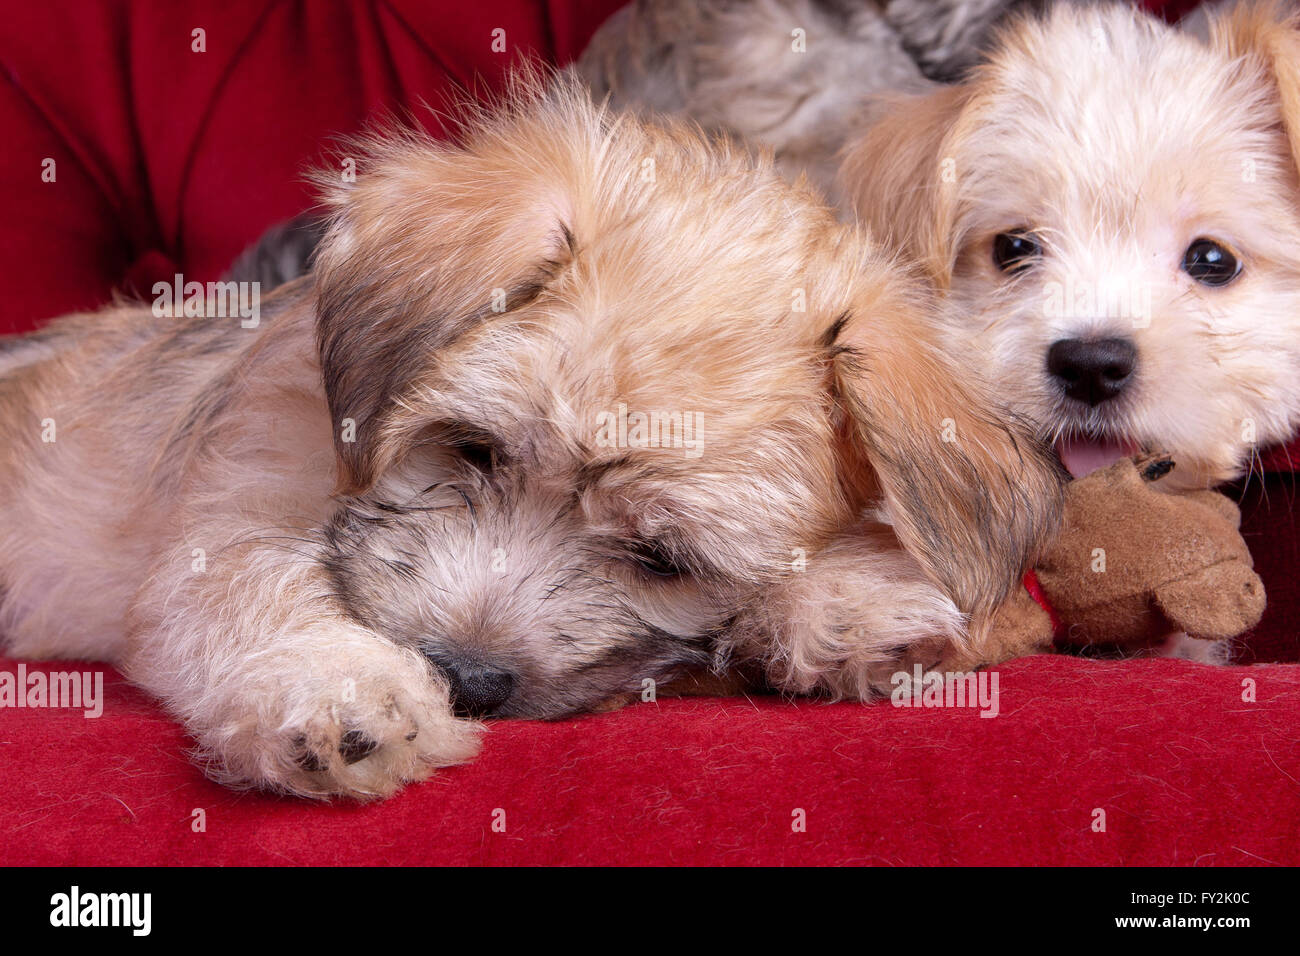 Mixed Breed Yorkshire Terrier Puppies Stock Photo 102706364 Alamy